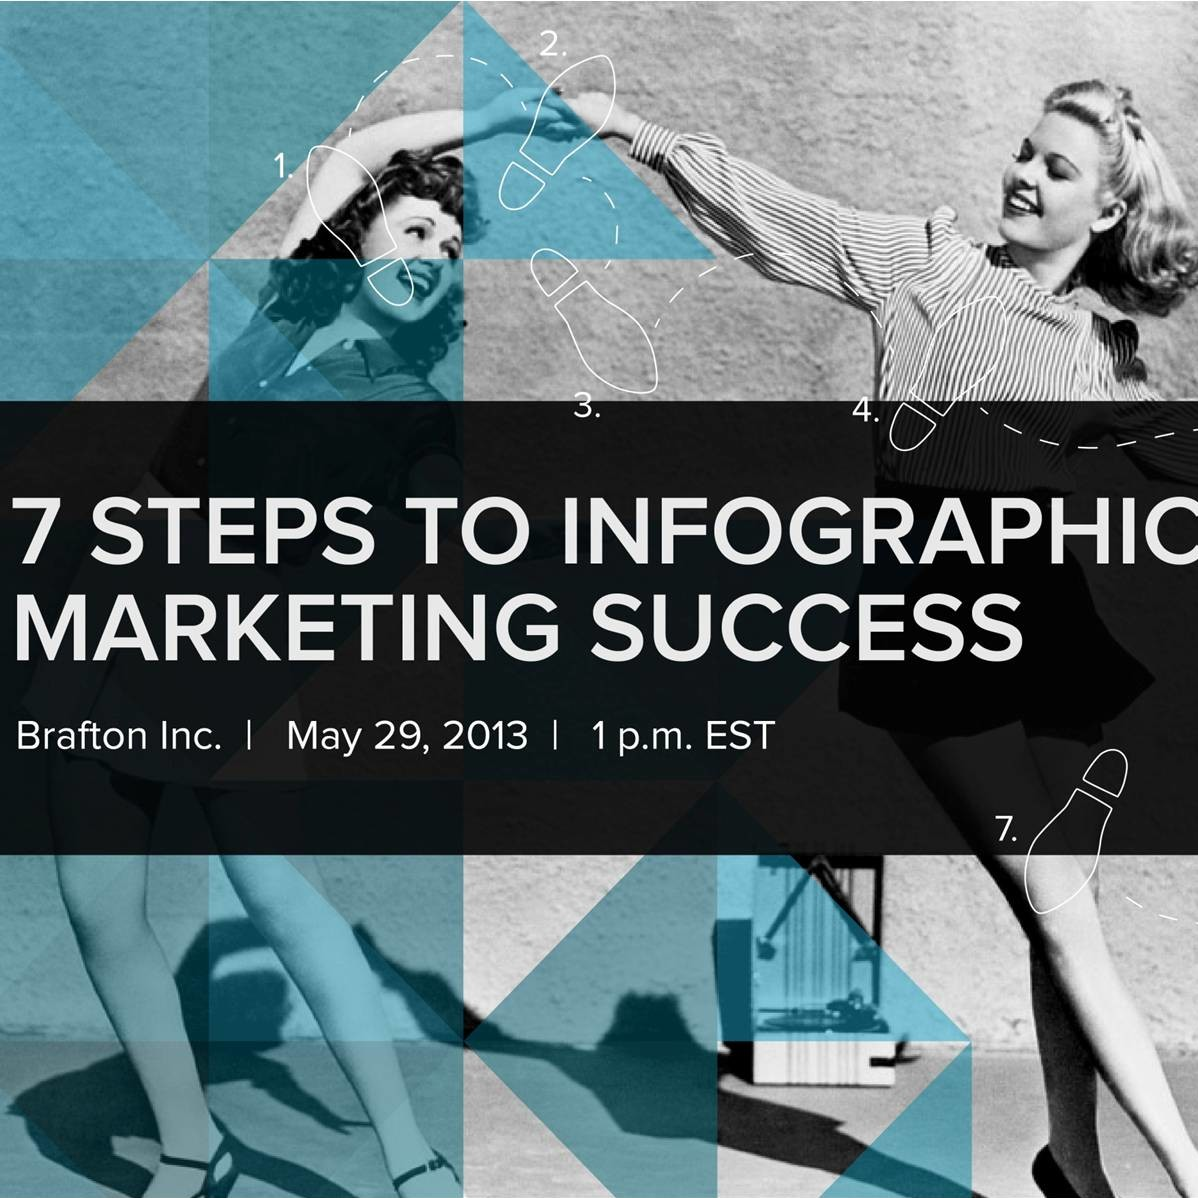 7 steps to infographic marketing success